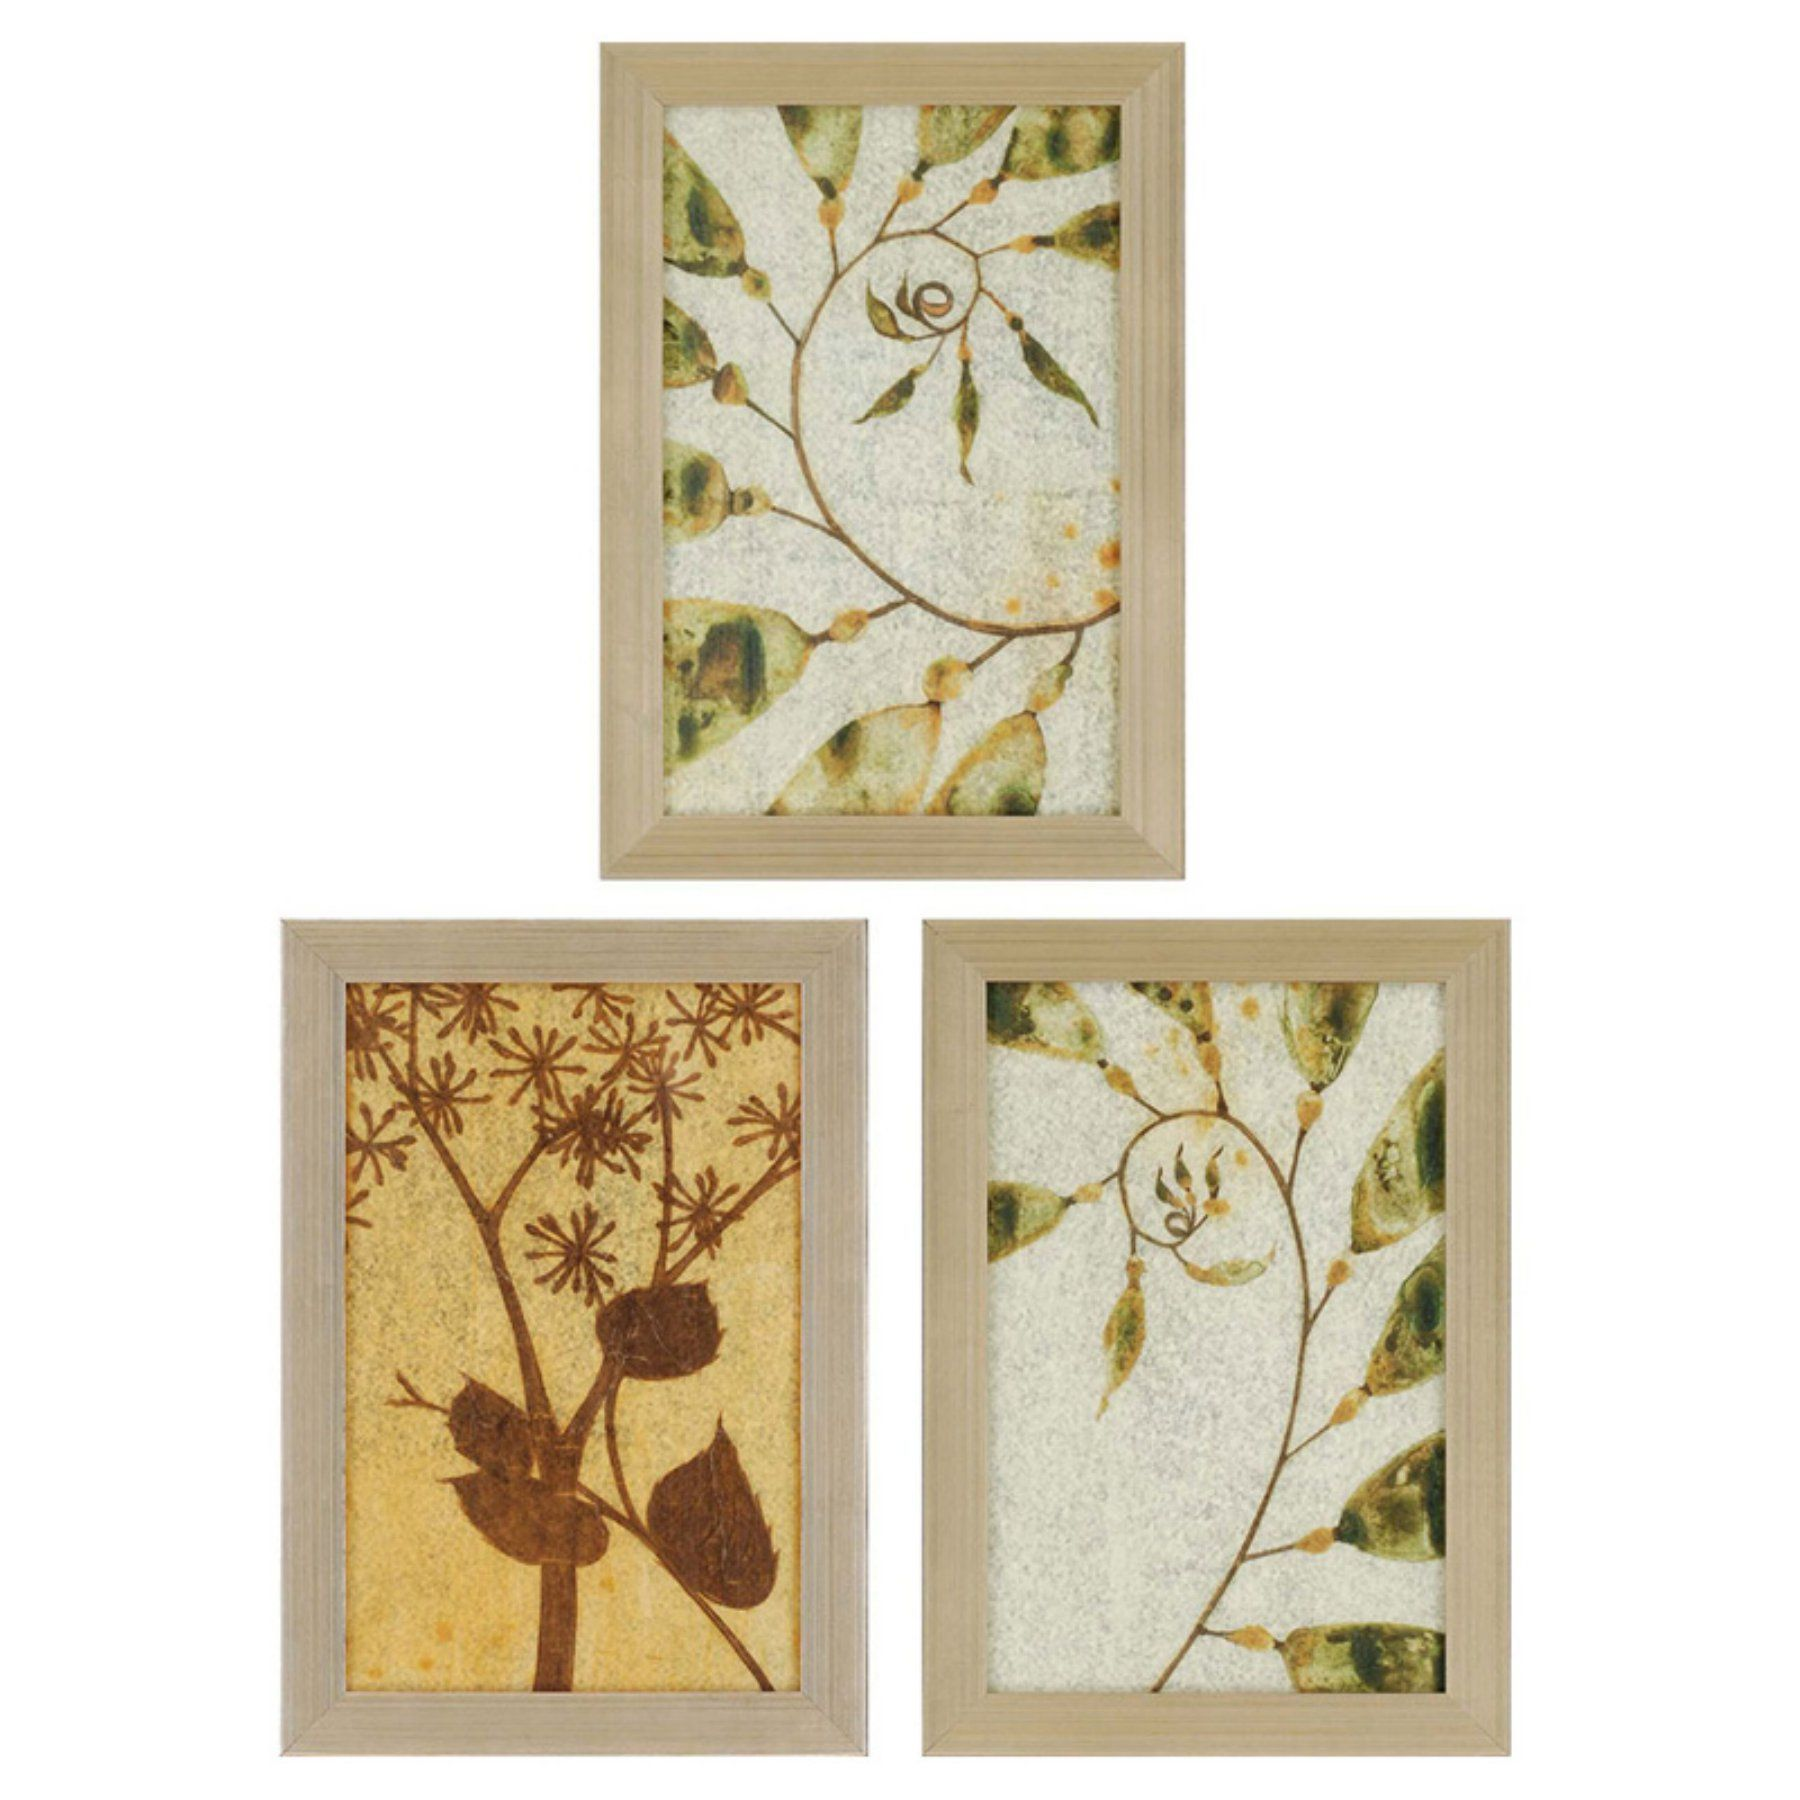 Paragon decor nature study ii by jardine set of wall art also rh pinterest